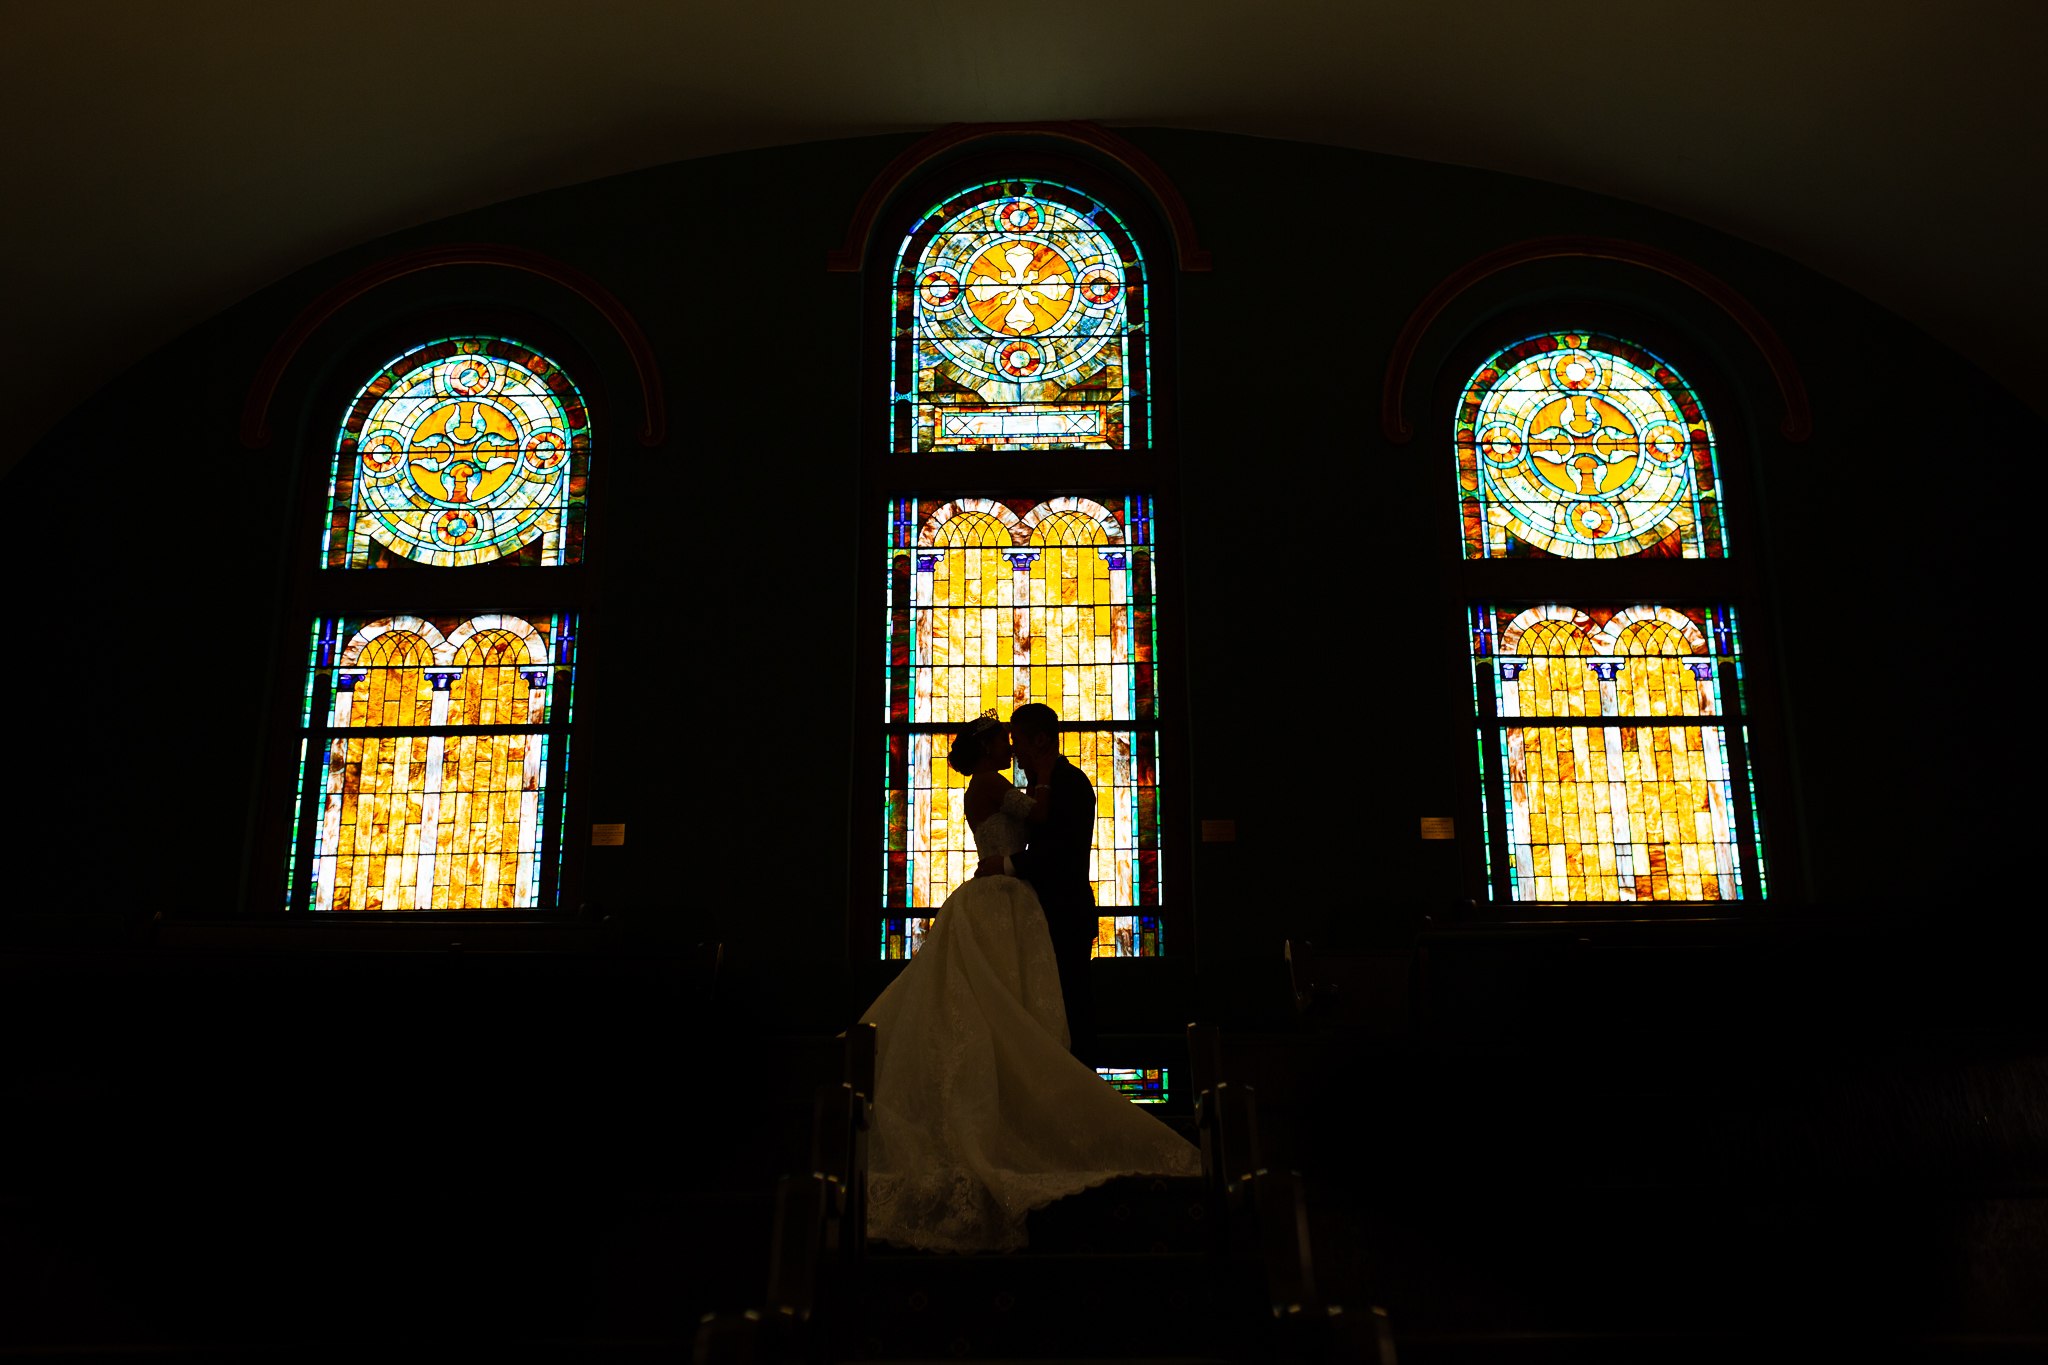 Bride and Groom Kissing inside church.